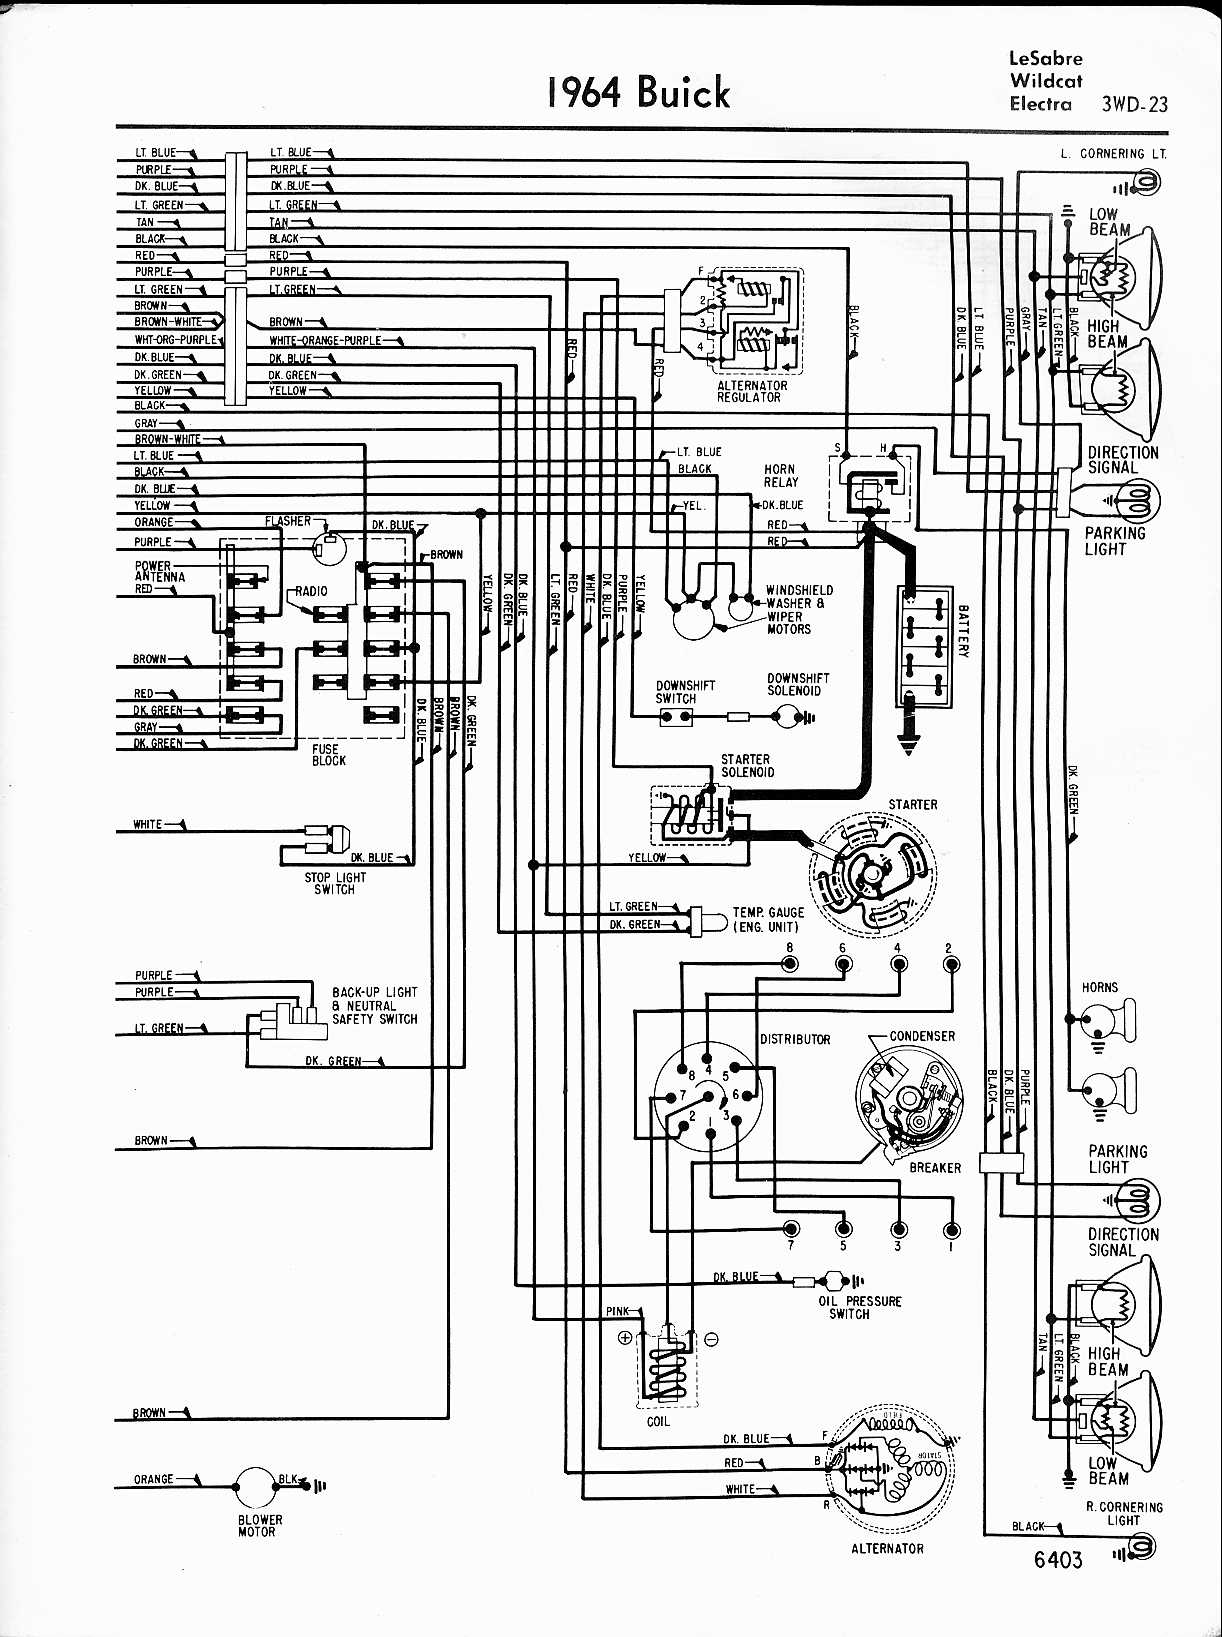 2002 audi a4 fuel pump wiring diagram schematic diagram 2004 Saturn Vue Radio Wiring 2002 bmw 745li radio wiring diagram wiring library 2001 toyota rav4 wiring diagram 1970 bmw 2002